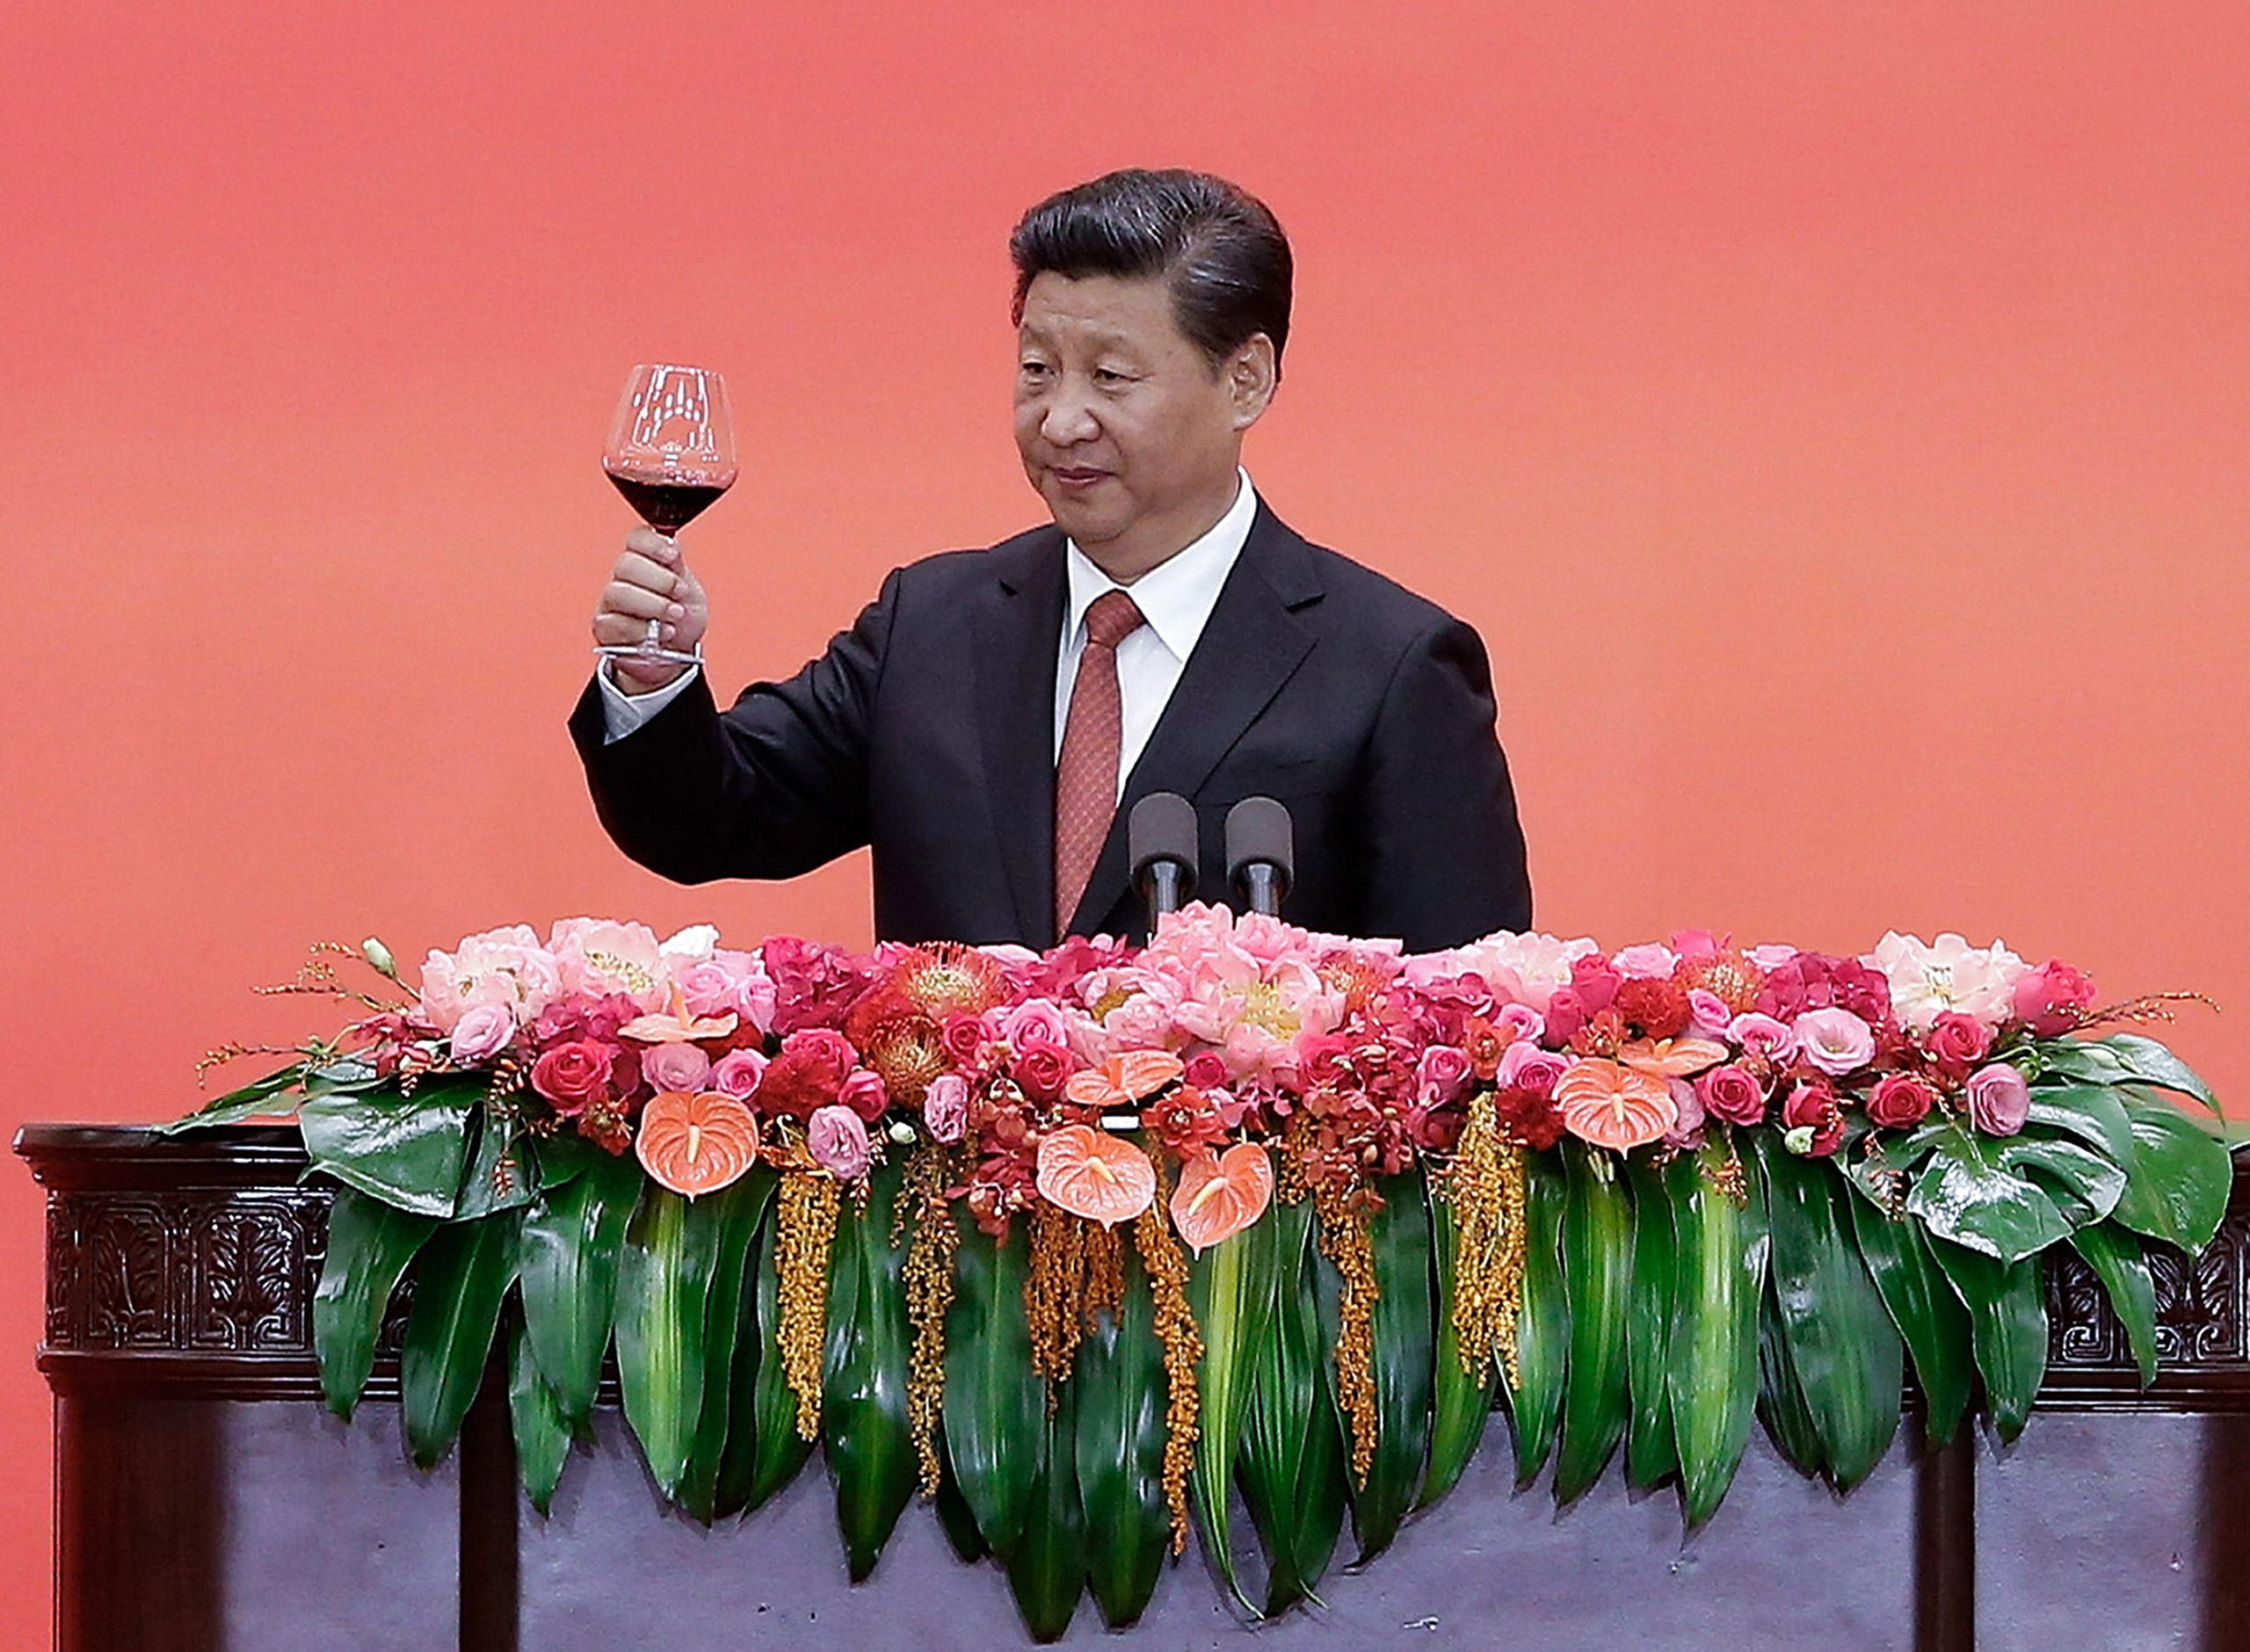 Chinese President Xi Jinping offers a toast after delivering a speech during a reception to mark the 70th anniversary of Japan's surrender during World War II in Beijing, on Sept. 3, 2015.